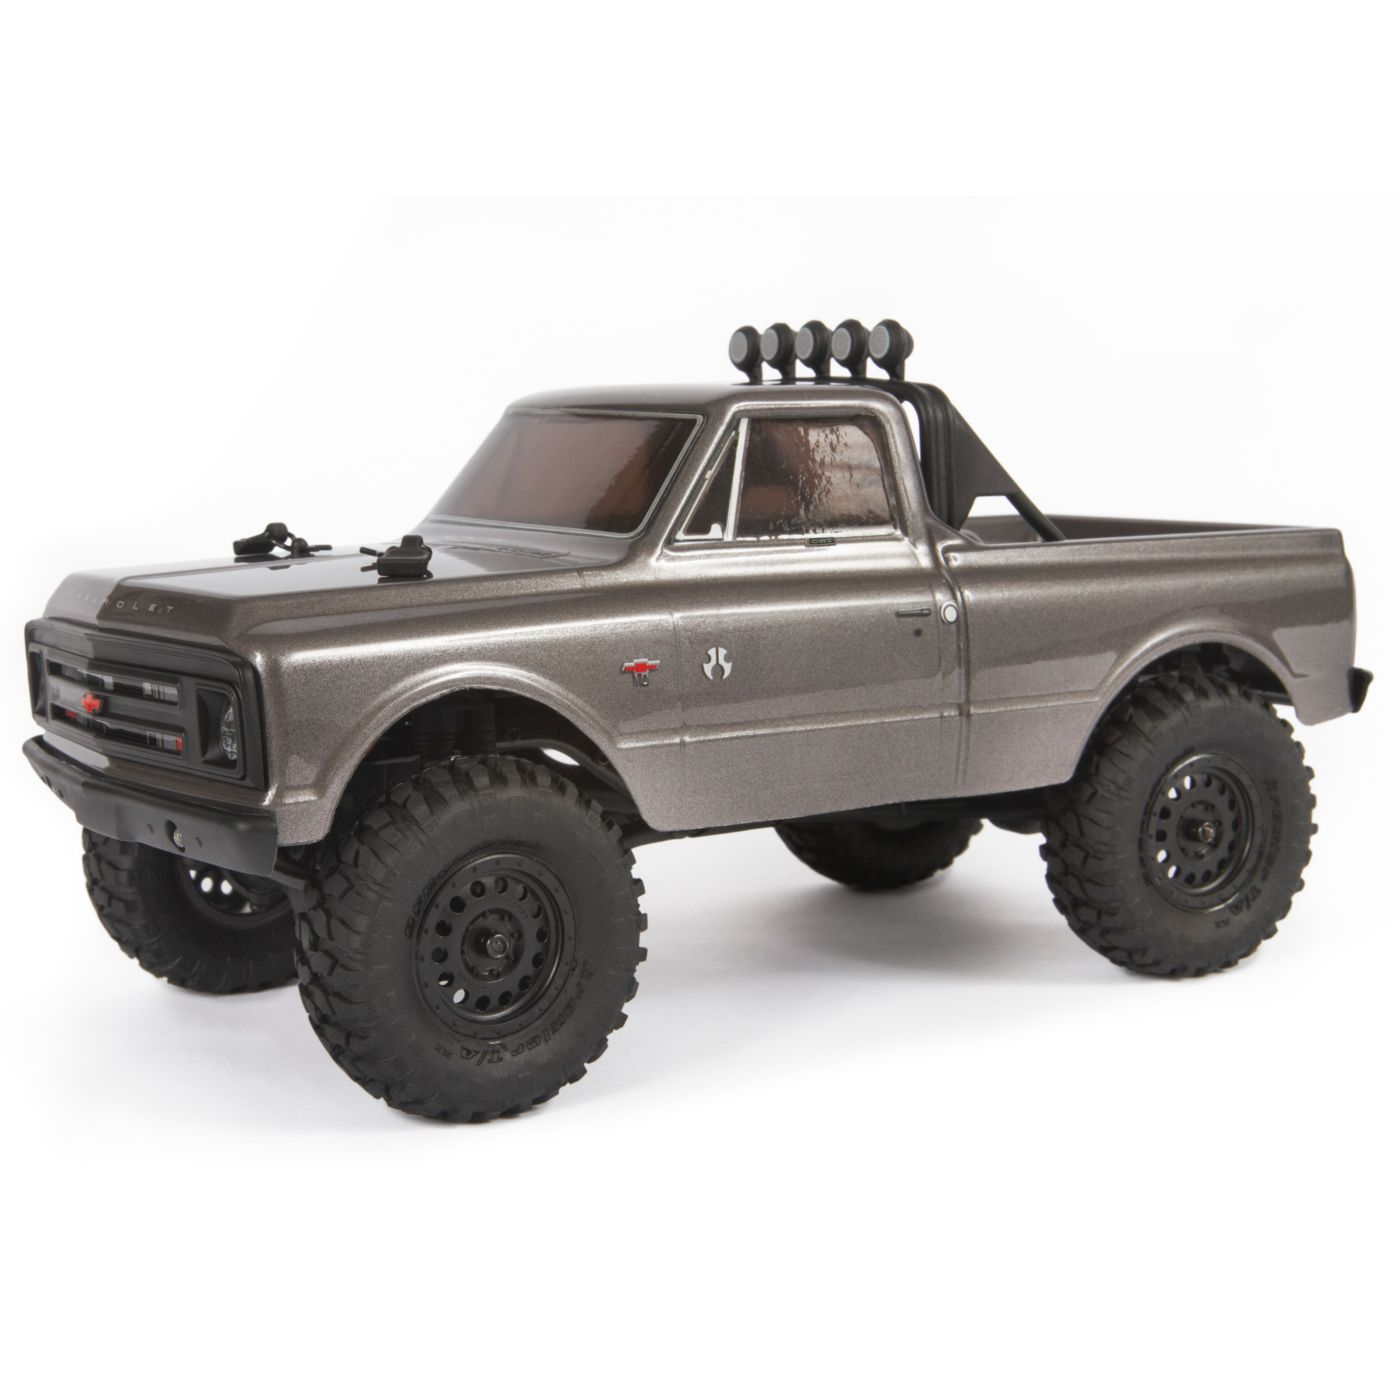 "Axial Racing 1/24 SCX24 1967 Chevrolet C10 4WD Truck Brushed RTR, Silver <font color=""red""><b>(PREORDER)</b></font> <font color=""red""><b>FREE BATTERY PROMO</b></font>"